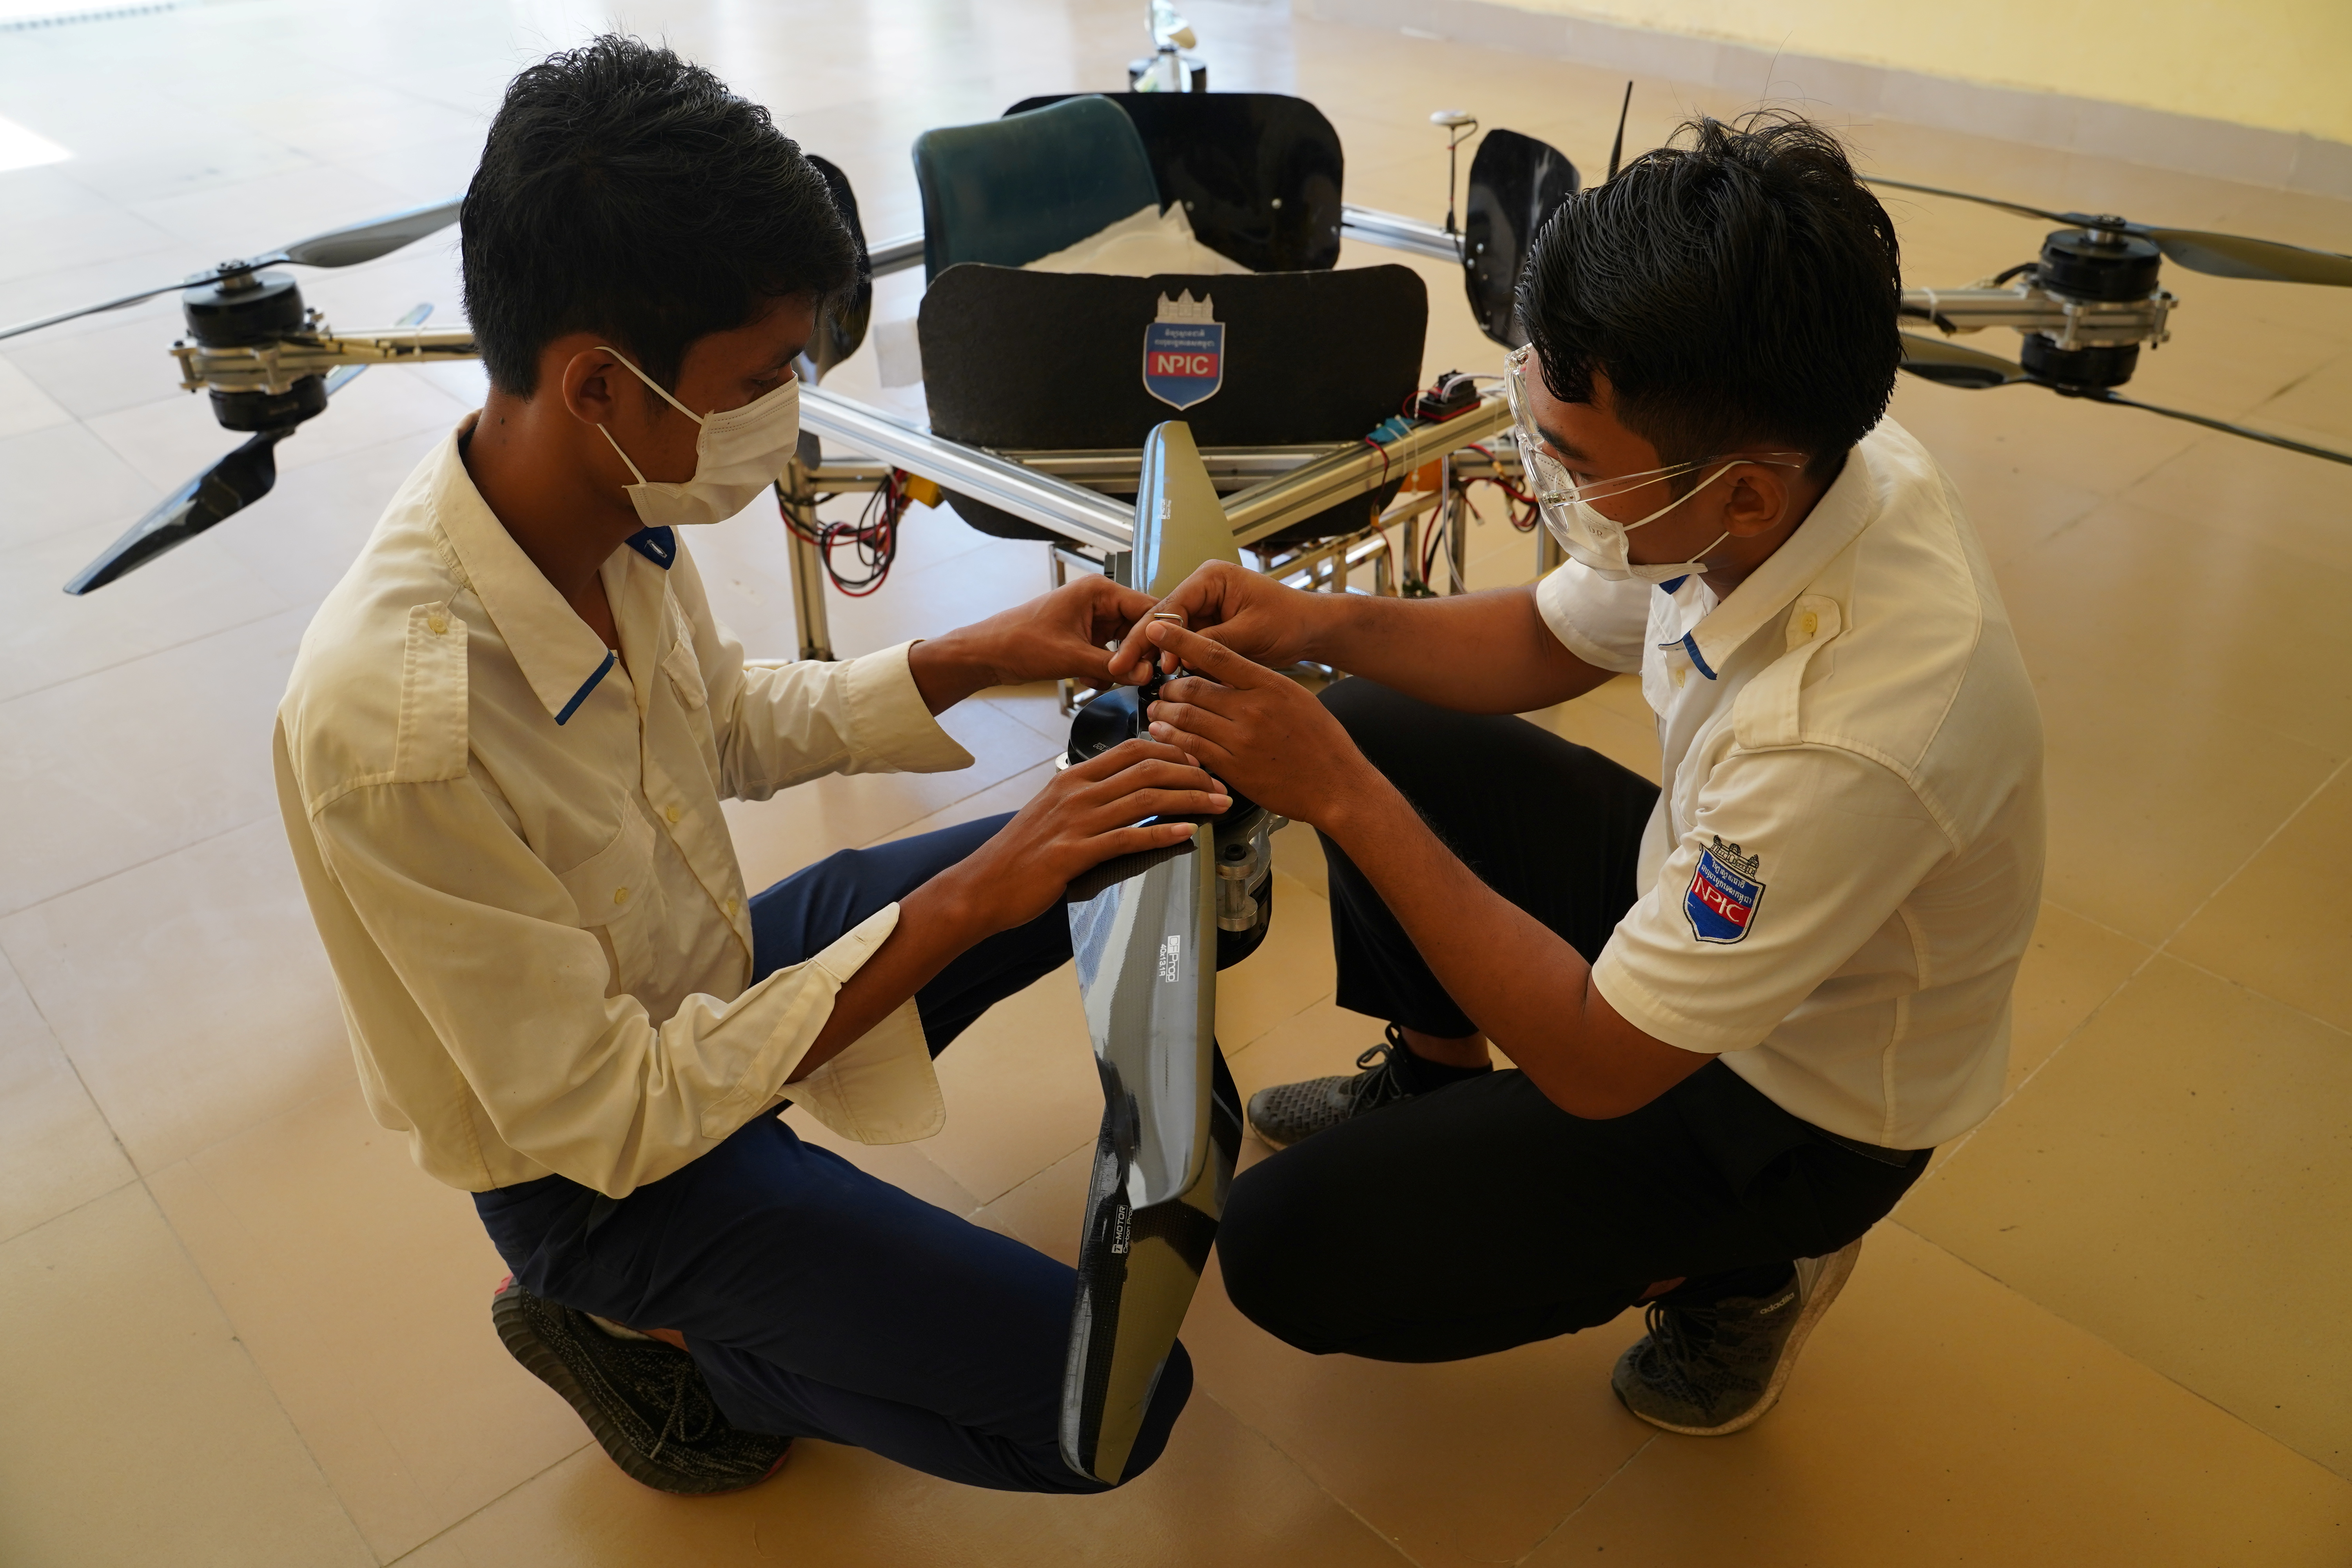 Students of the National Polytechnic Institute of Cambodia prepare their manned drone for flight, in Phnom Penh, Cambodia, September 17, 2021. REUTERS/Cindy Liu